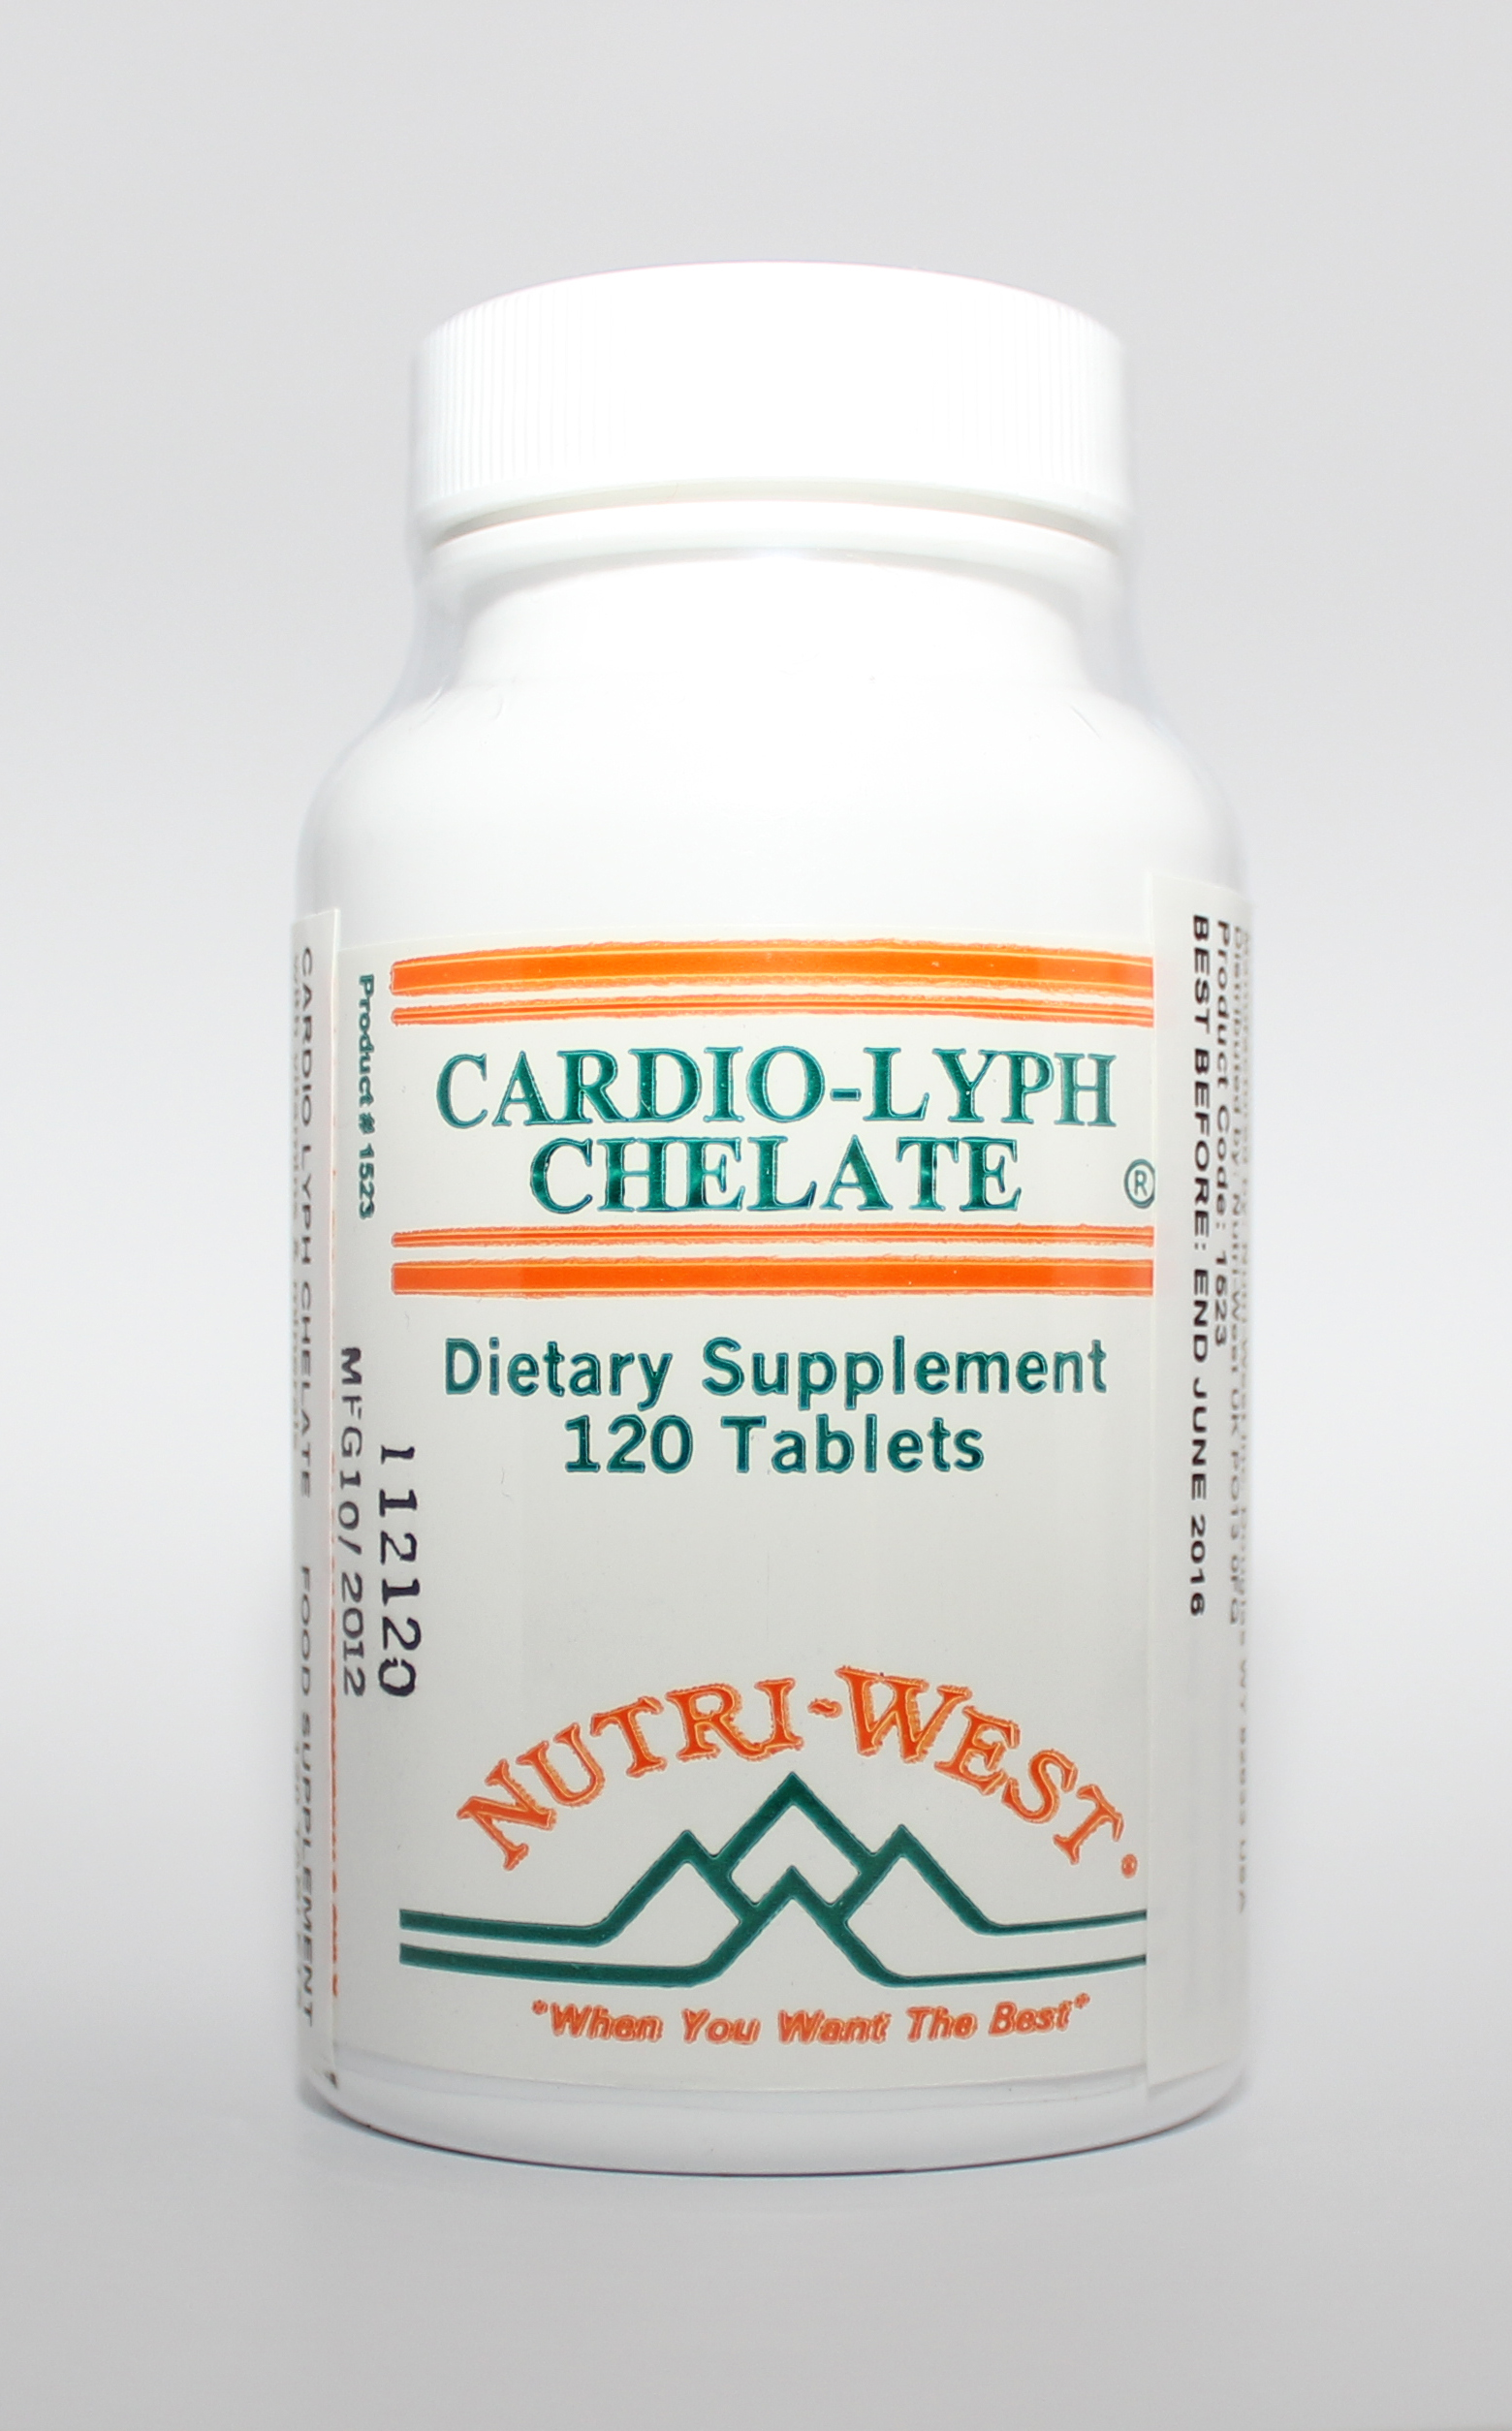 Nutri-West Cardio-Lyph-Chelate - 120